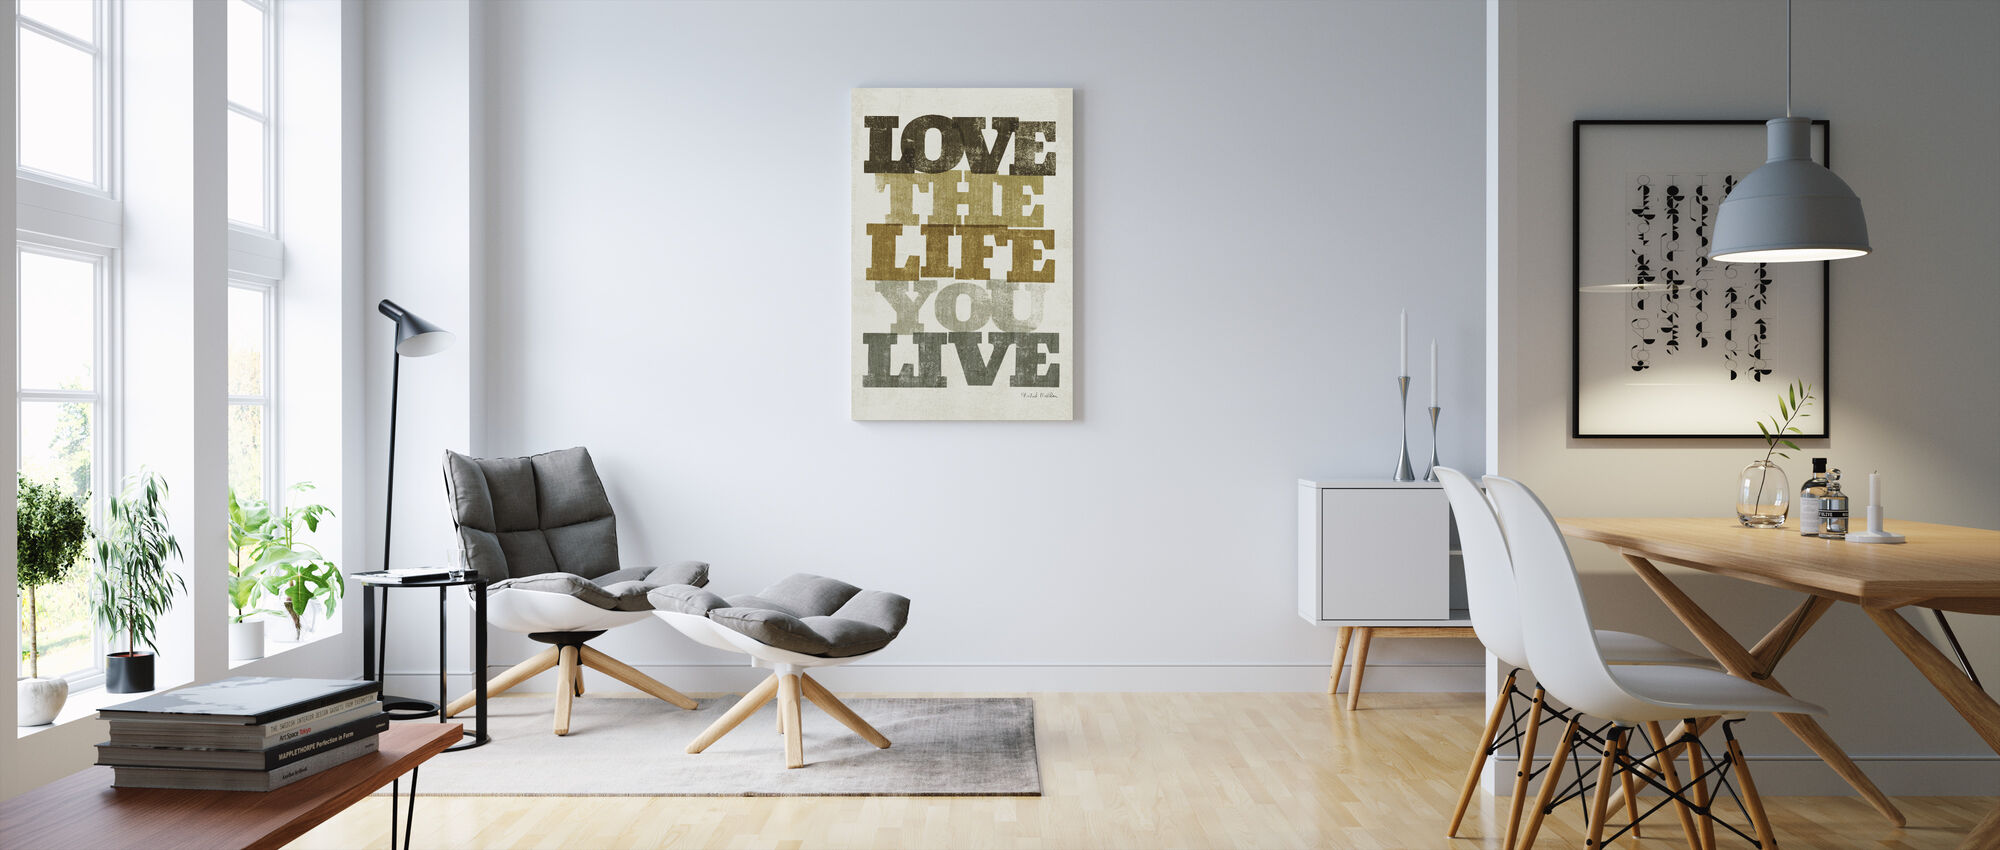 Live and Love II - Canvas print - Living Room